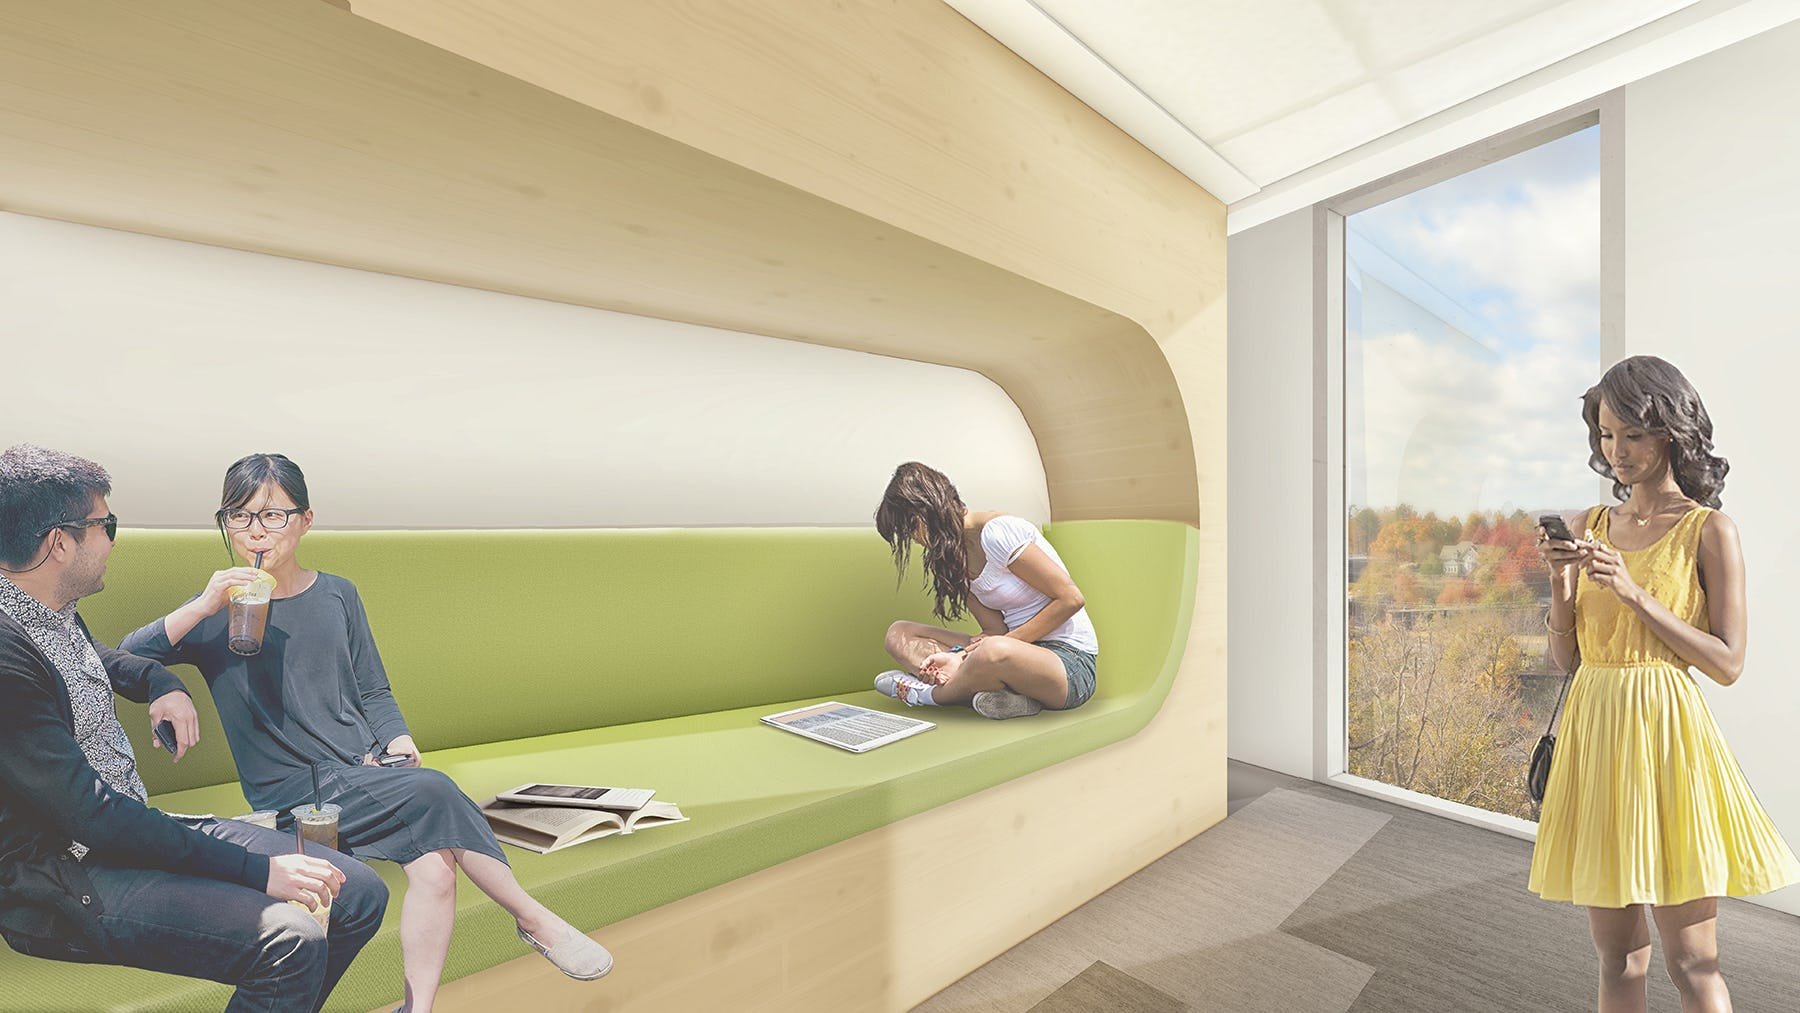 Uasdh rendering nook update low res